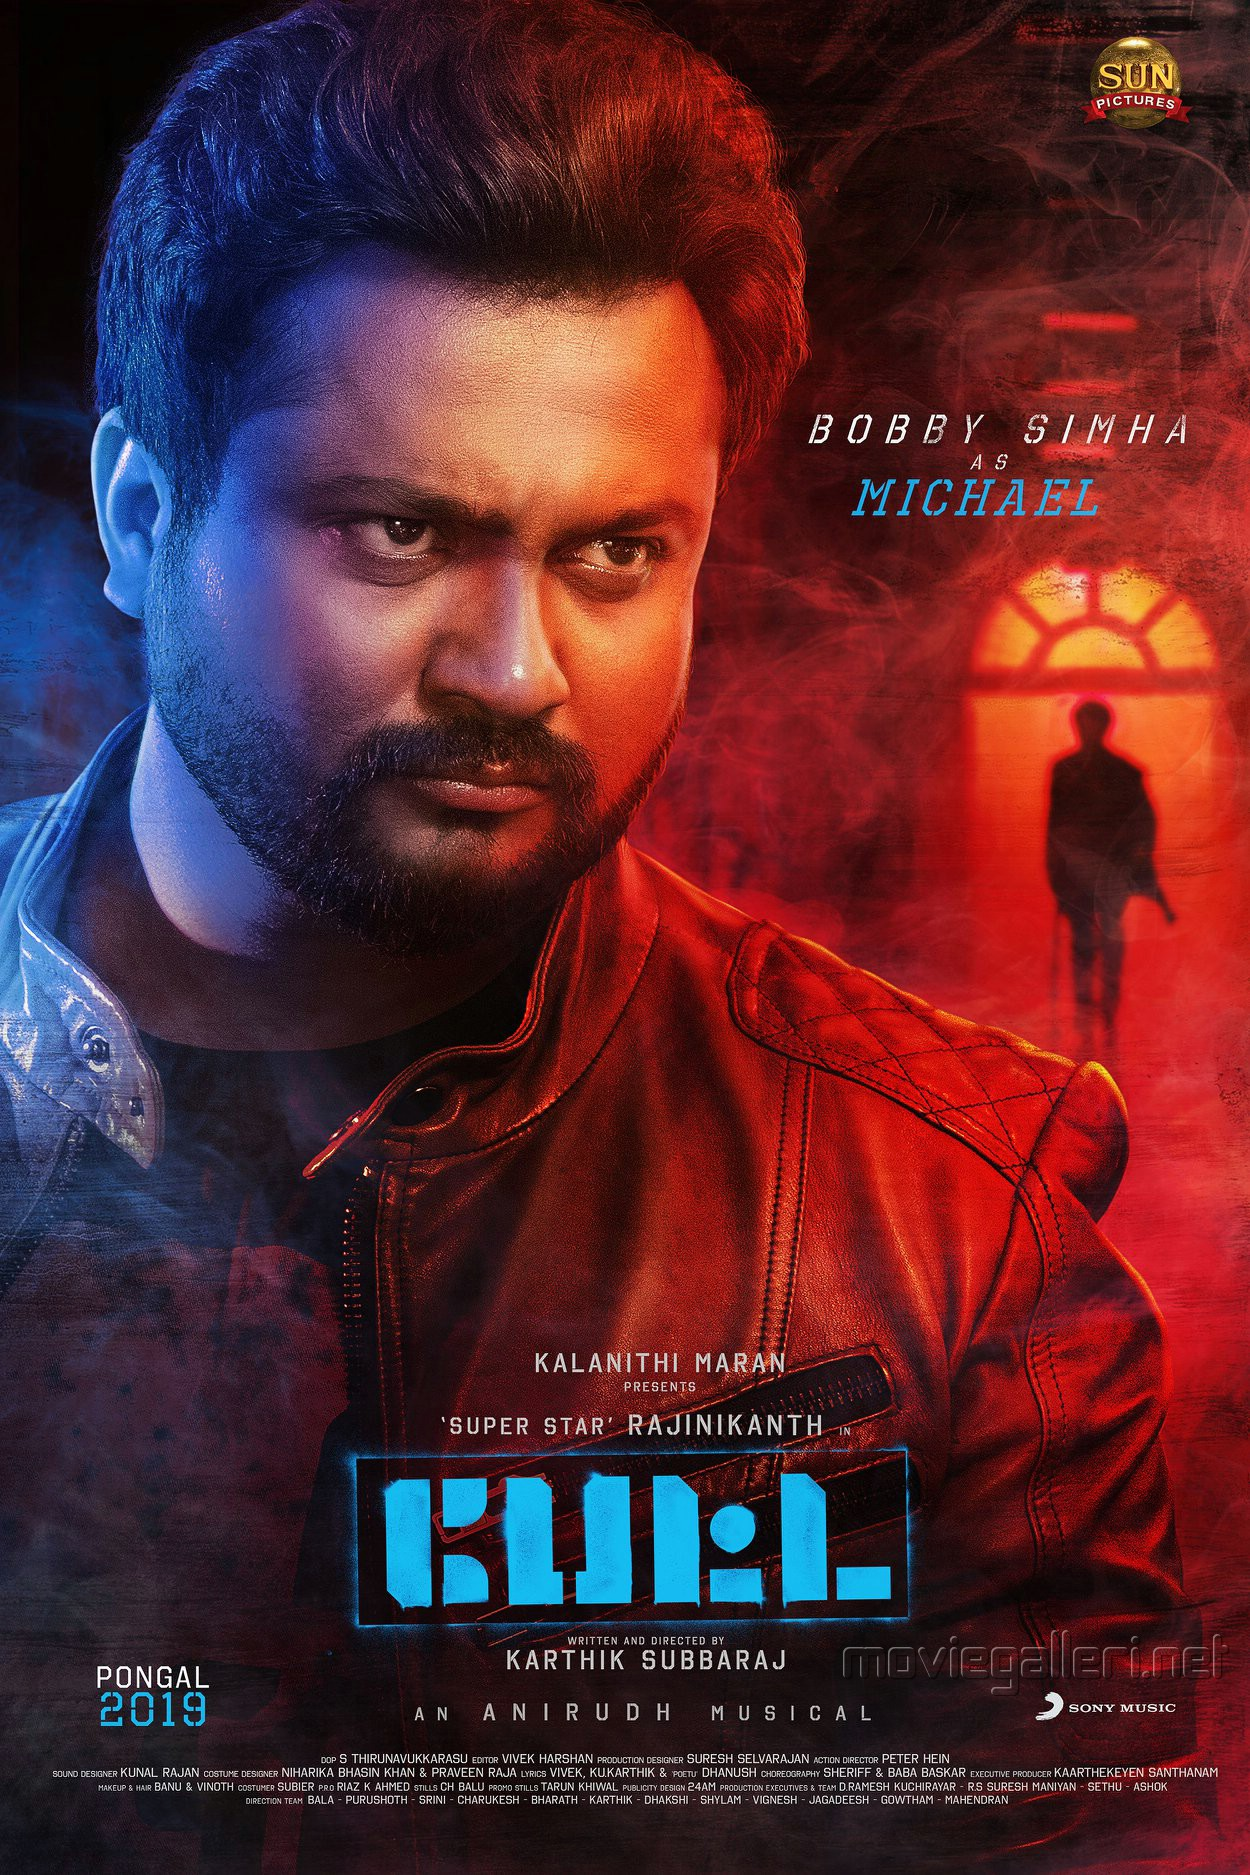 Actor Bobby Simha as Michael in Petta Movie Character Poster